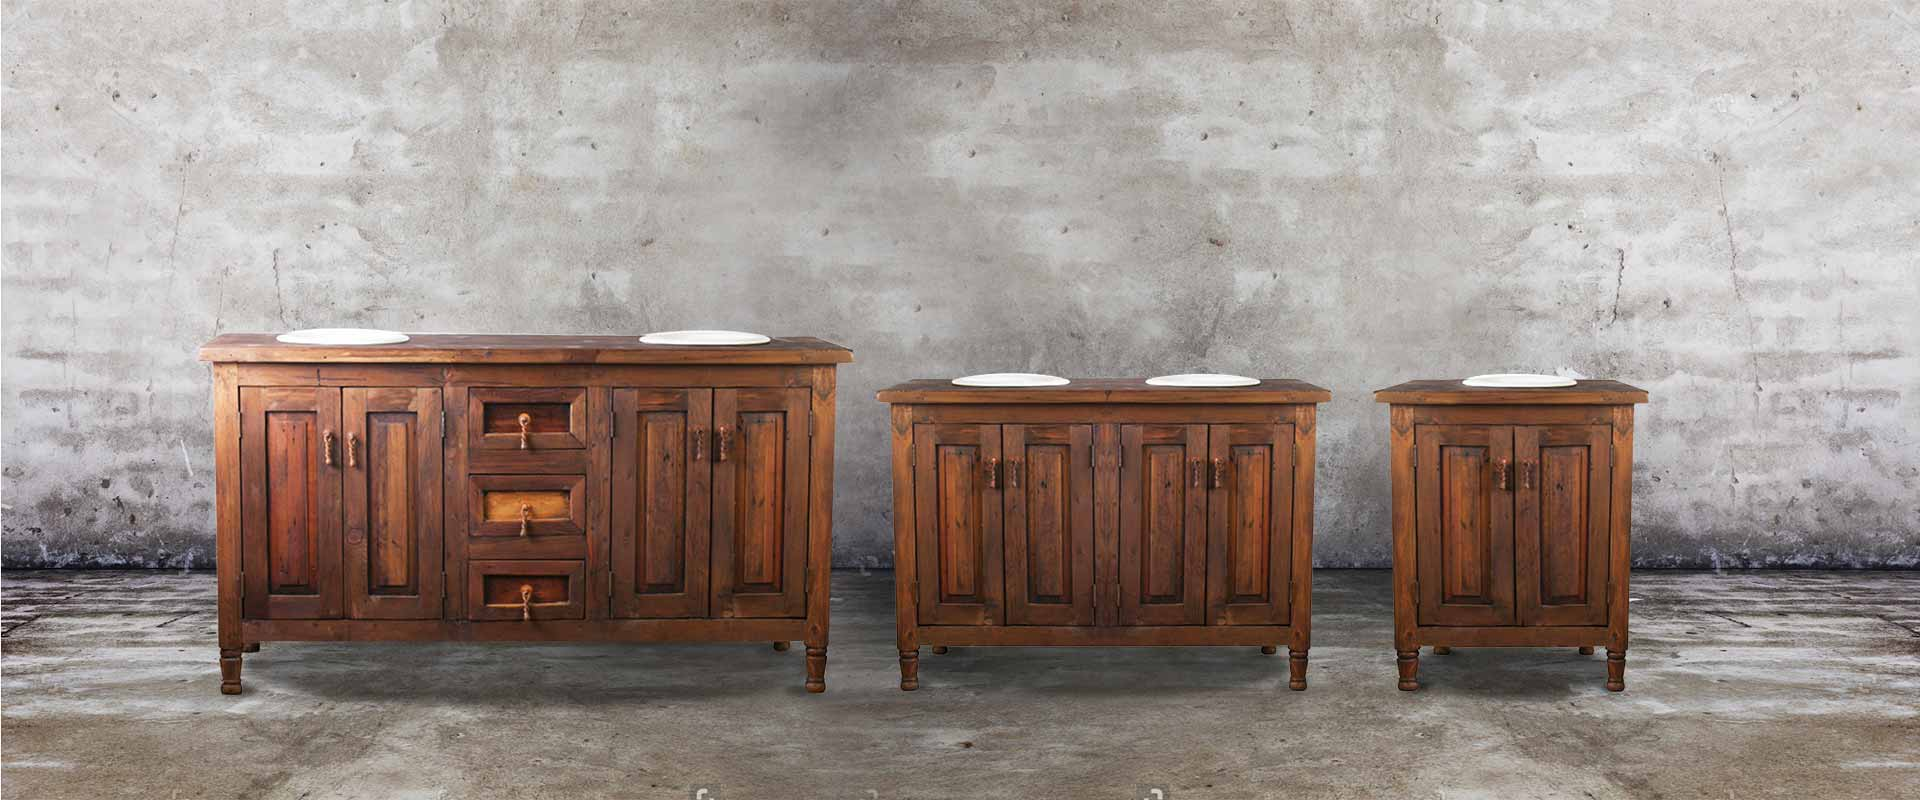 Custom Bathroom Vanities San Antonio Tx buy rustic handcrafted home decor products in texas | custom